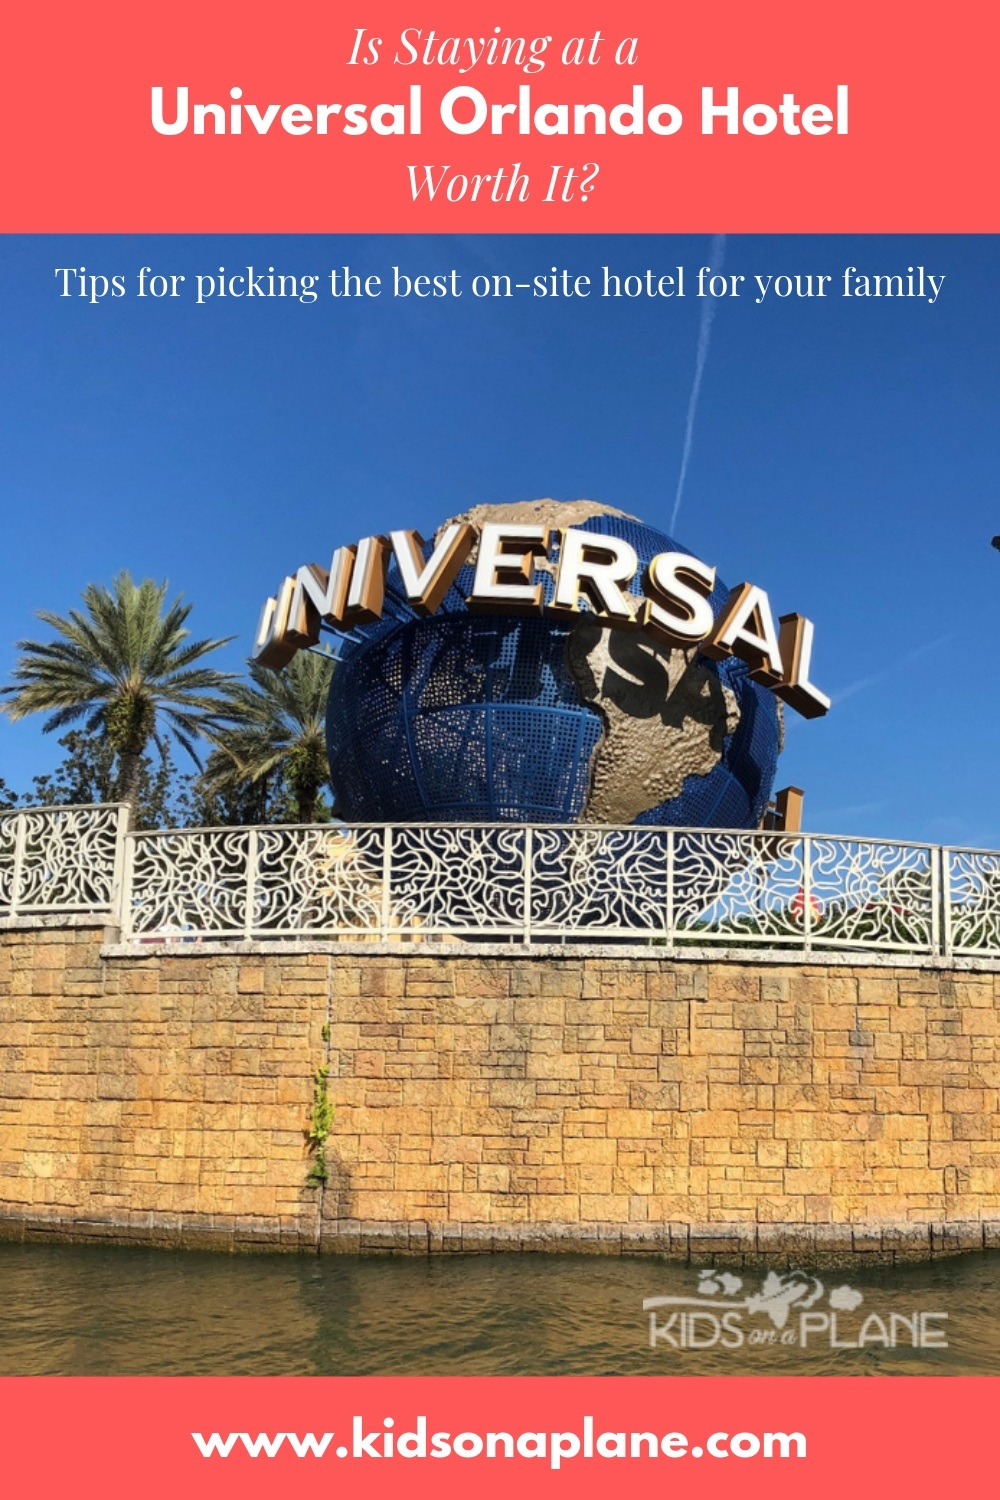 Is staying at a Universal Orlando hotel worth it plus tips on how to choose the best resort for your family